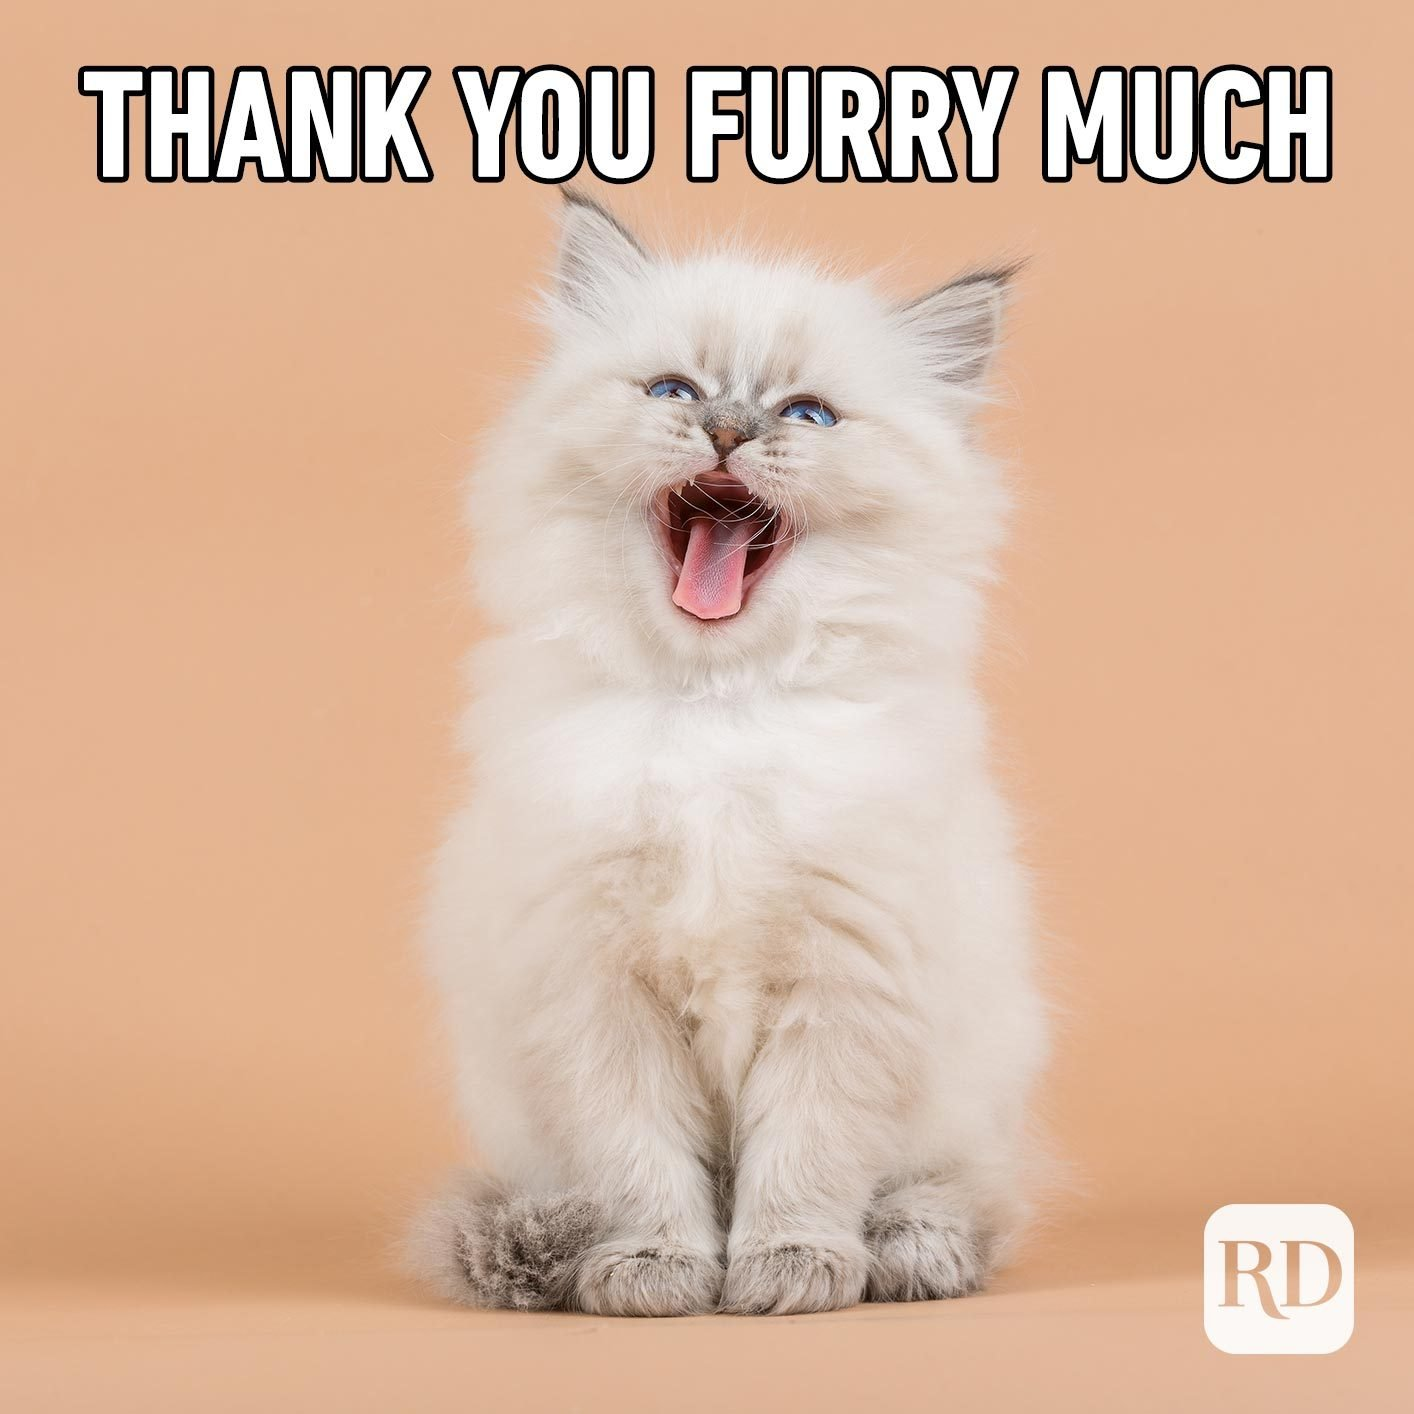 Cat screaming. Meme text: thank you furry much